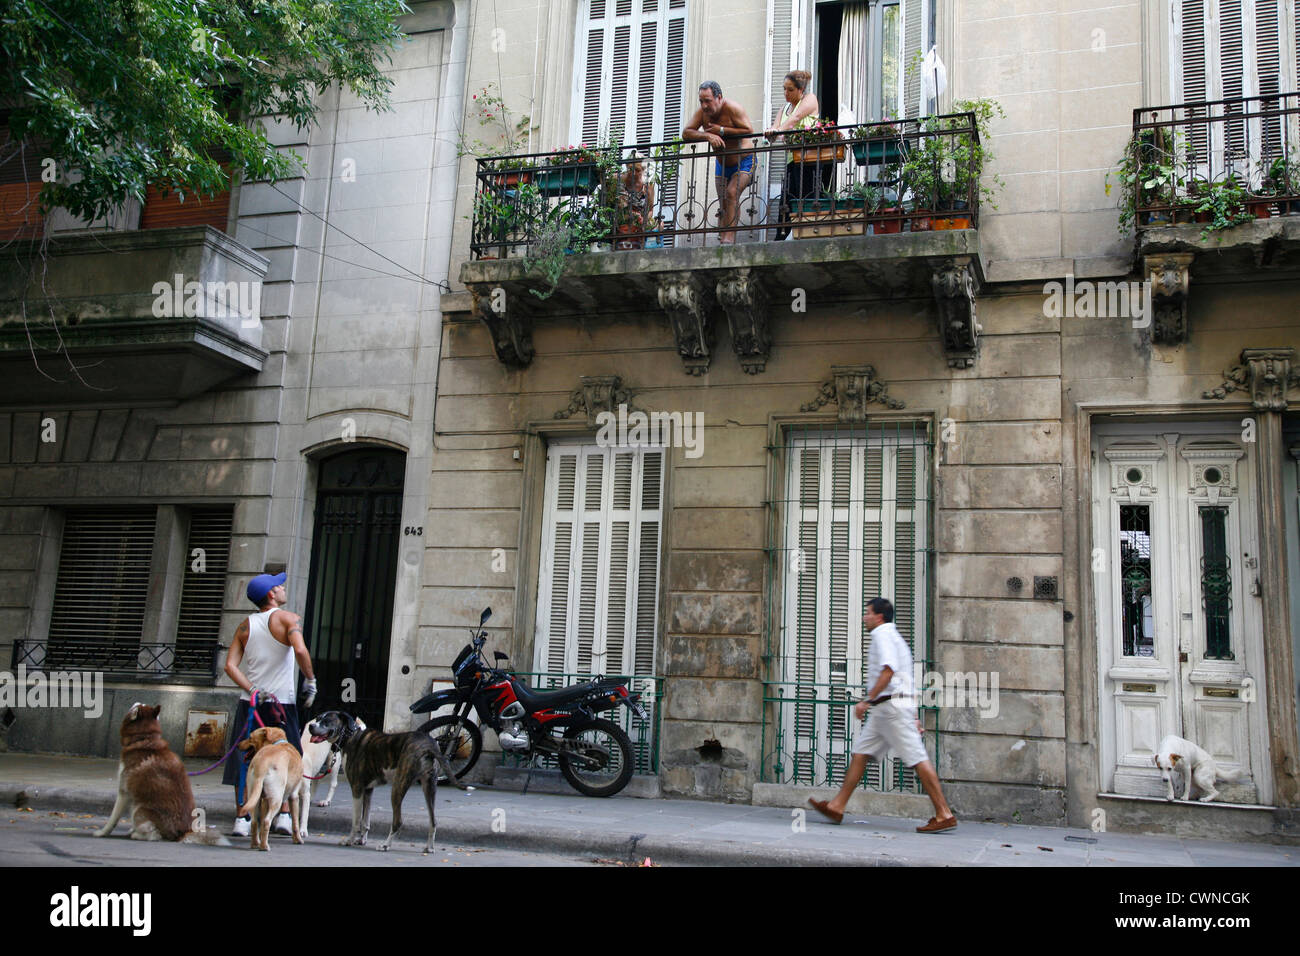 Street scene in La Boca neighbourhood, Buenos Aires, Argentina. - Stock Image